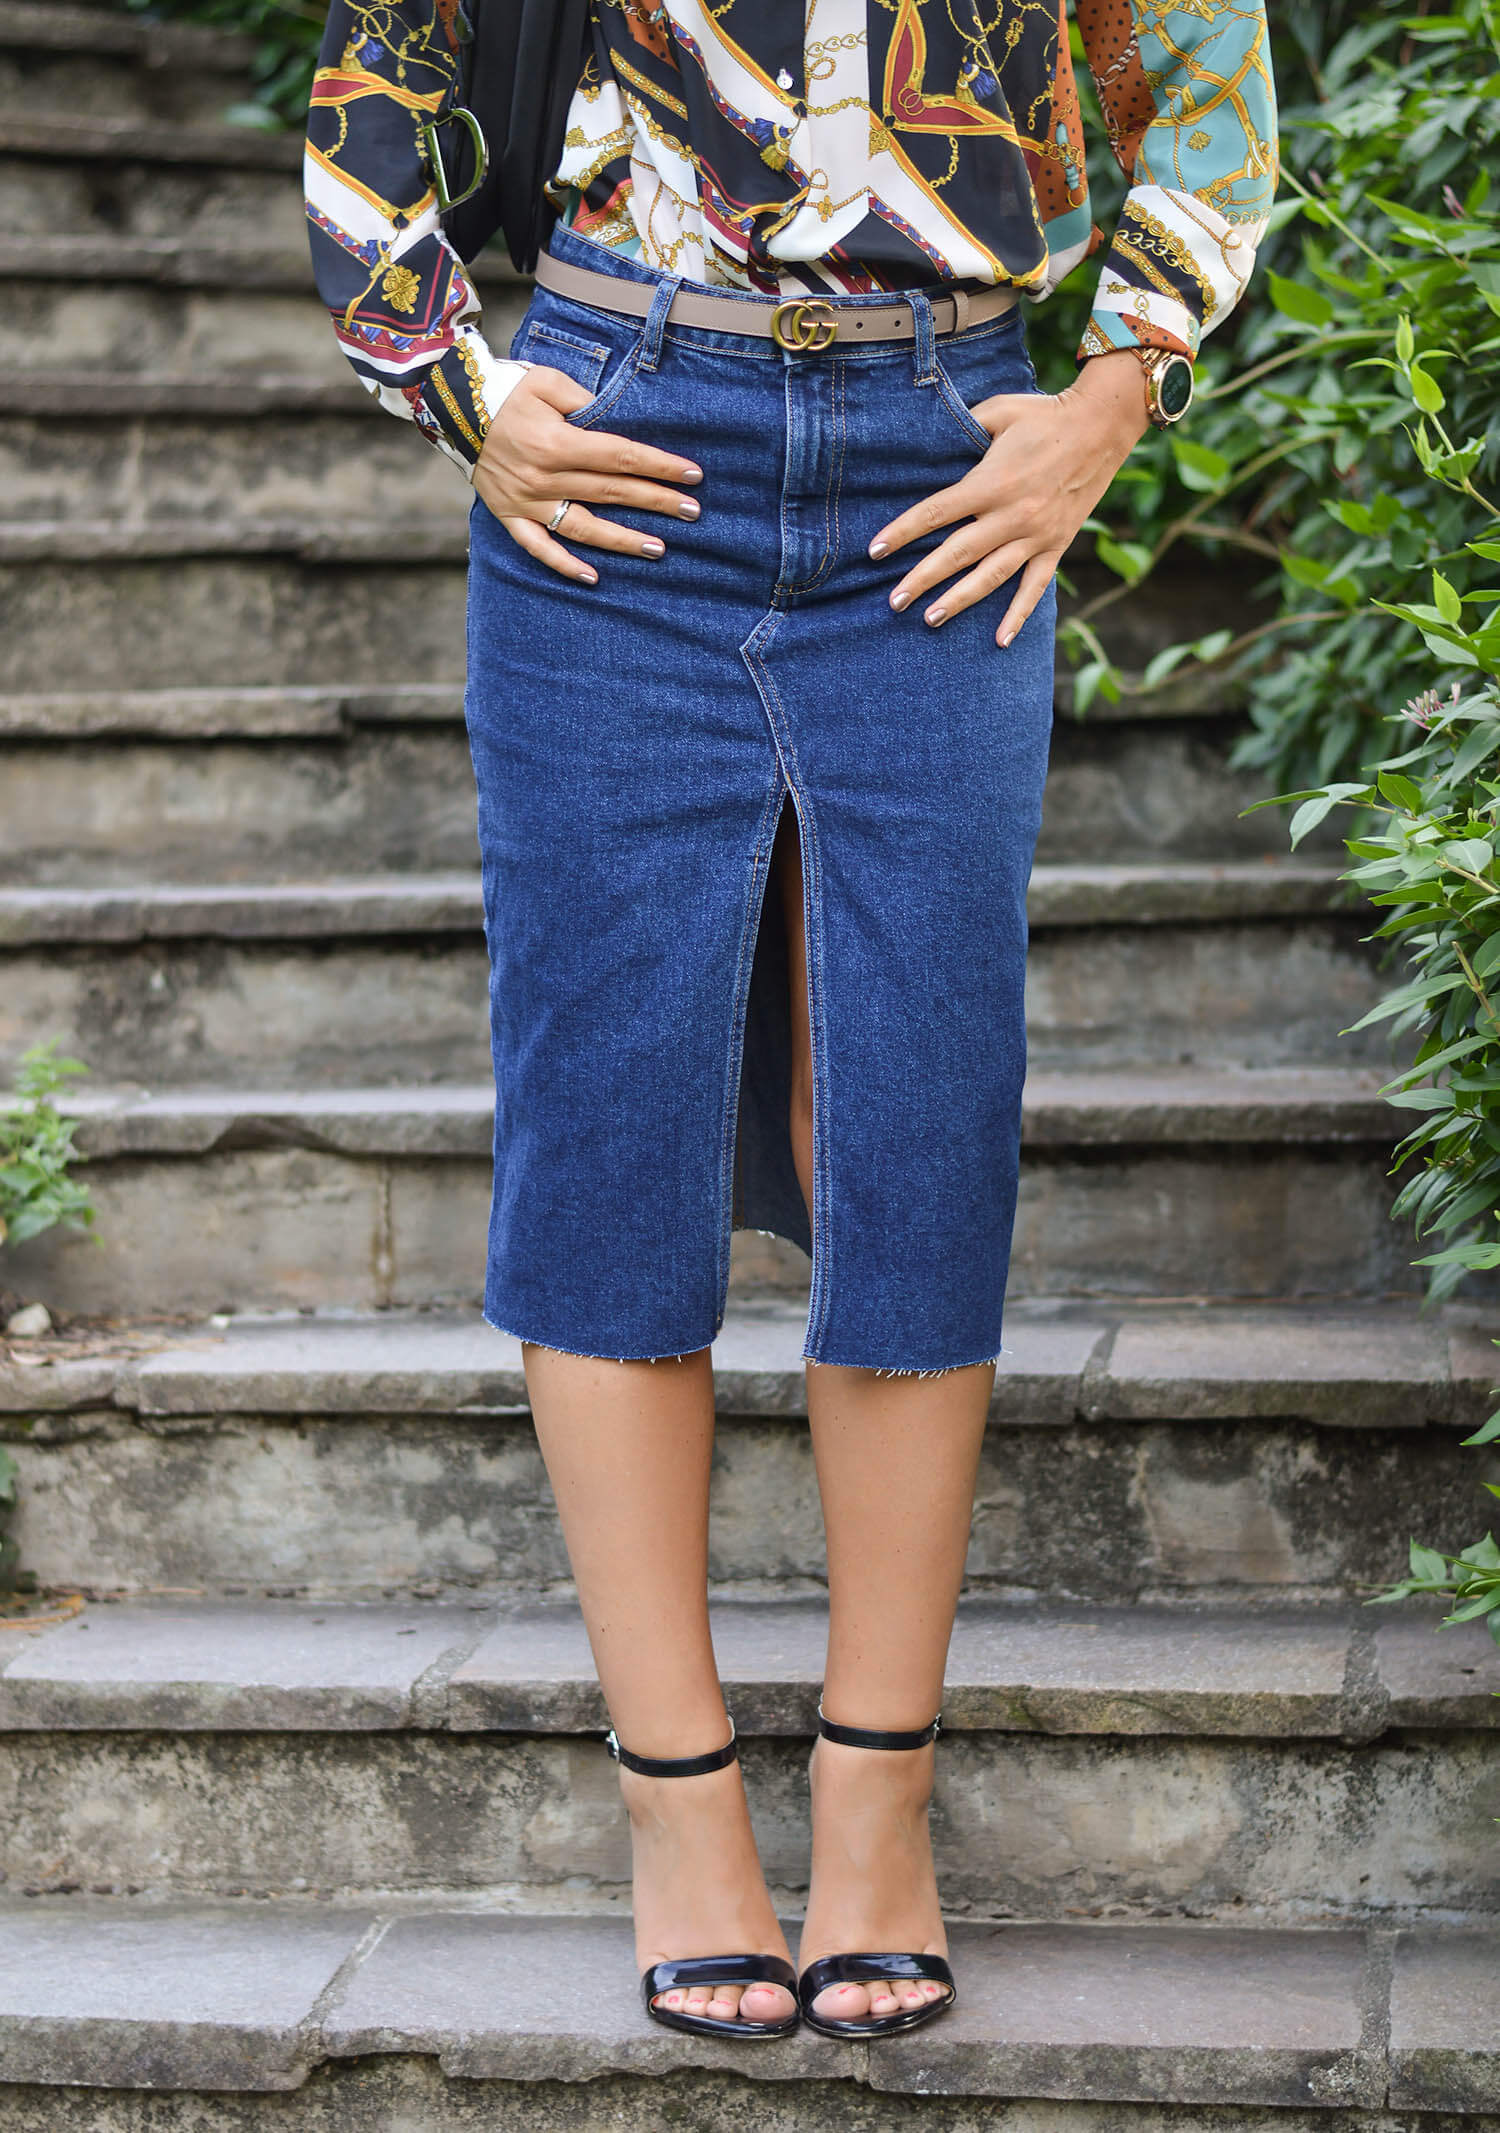 Outfit-Denim-Pencil-Skirt-Chain-Print-Blouse-and-Life-Update-kationette-gucci-belt